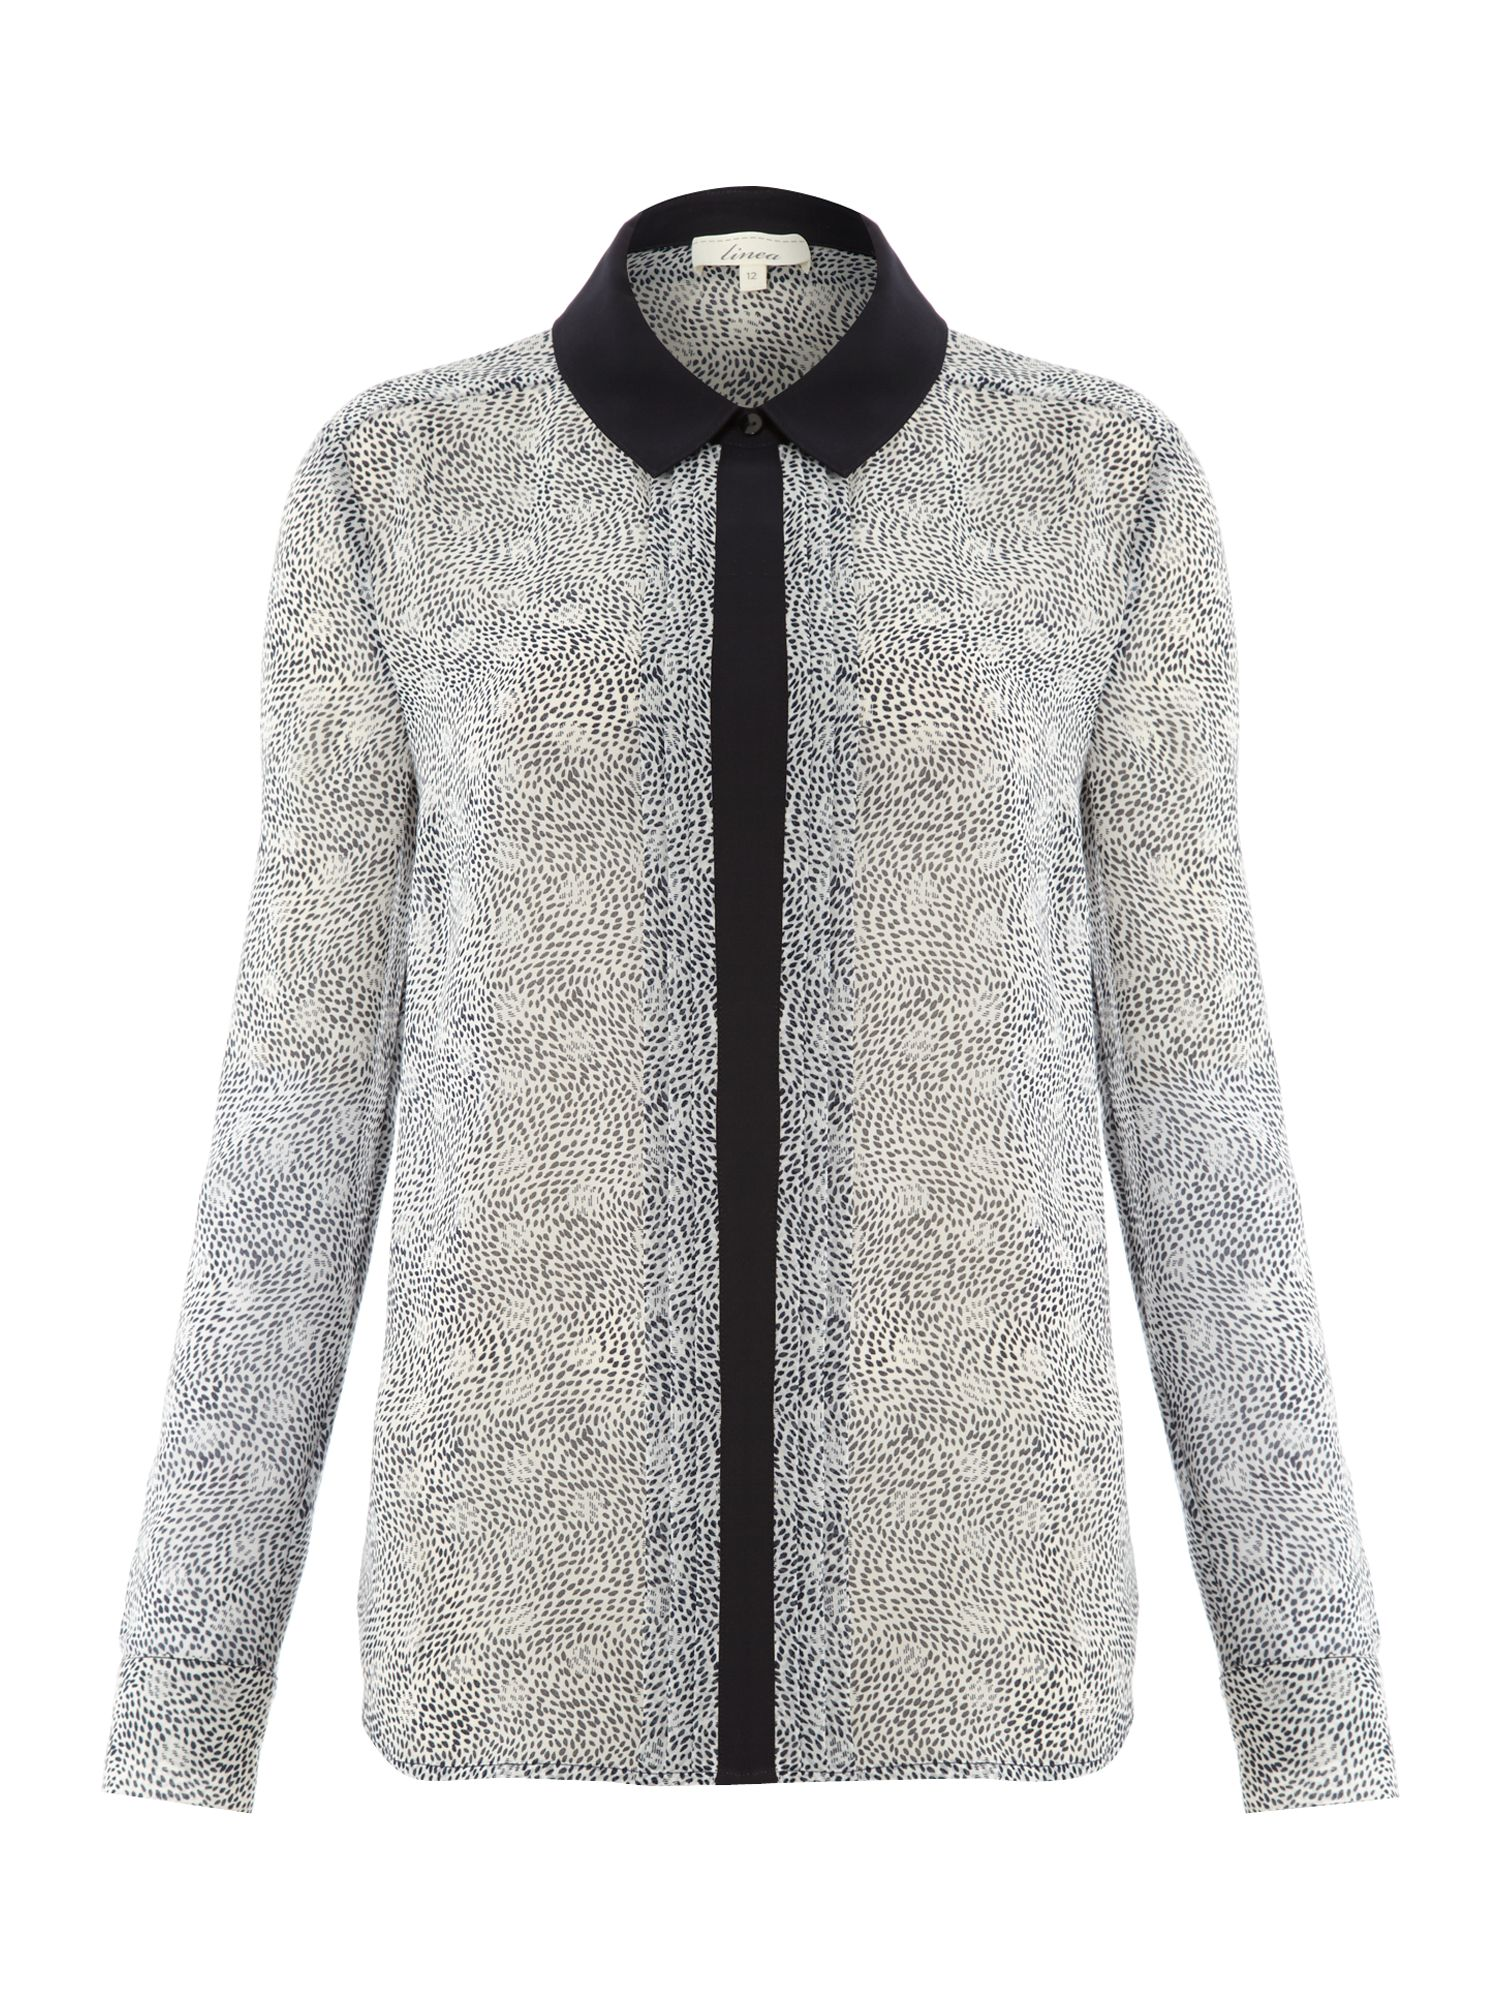 Spot/dash contrast collar shirt